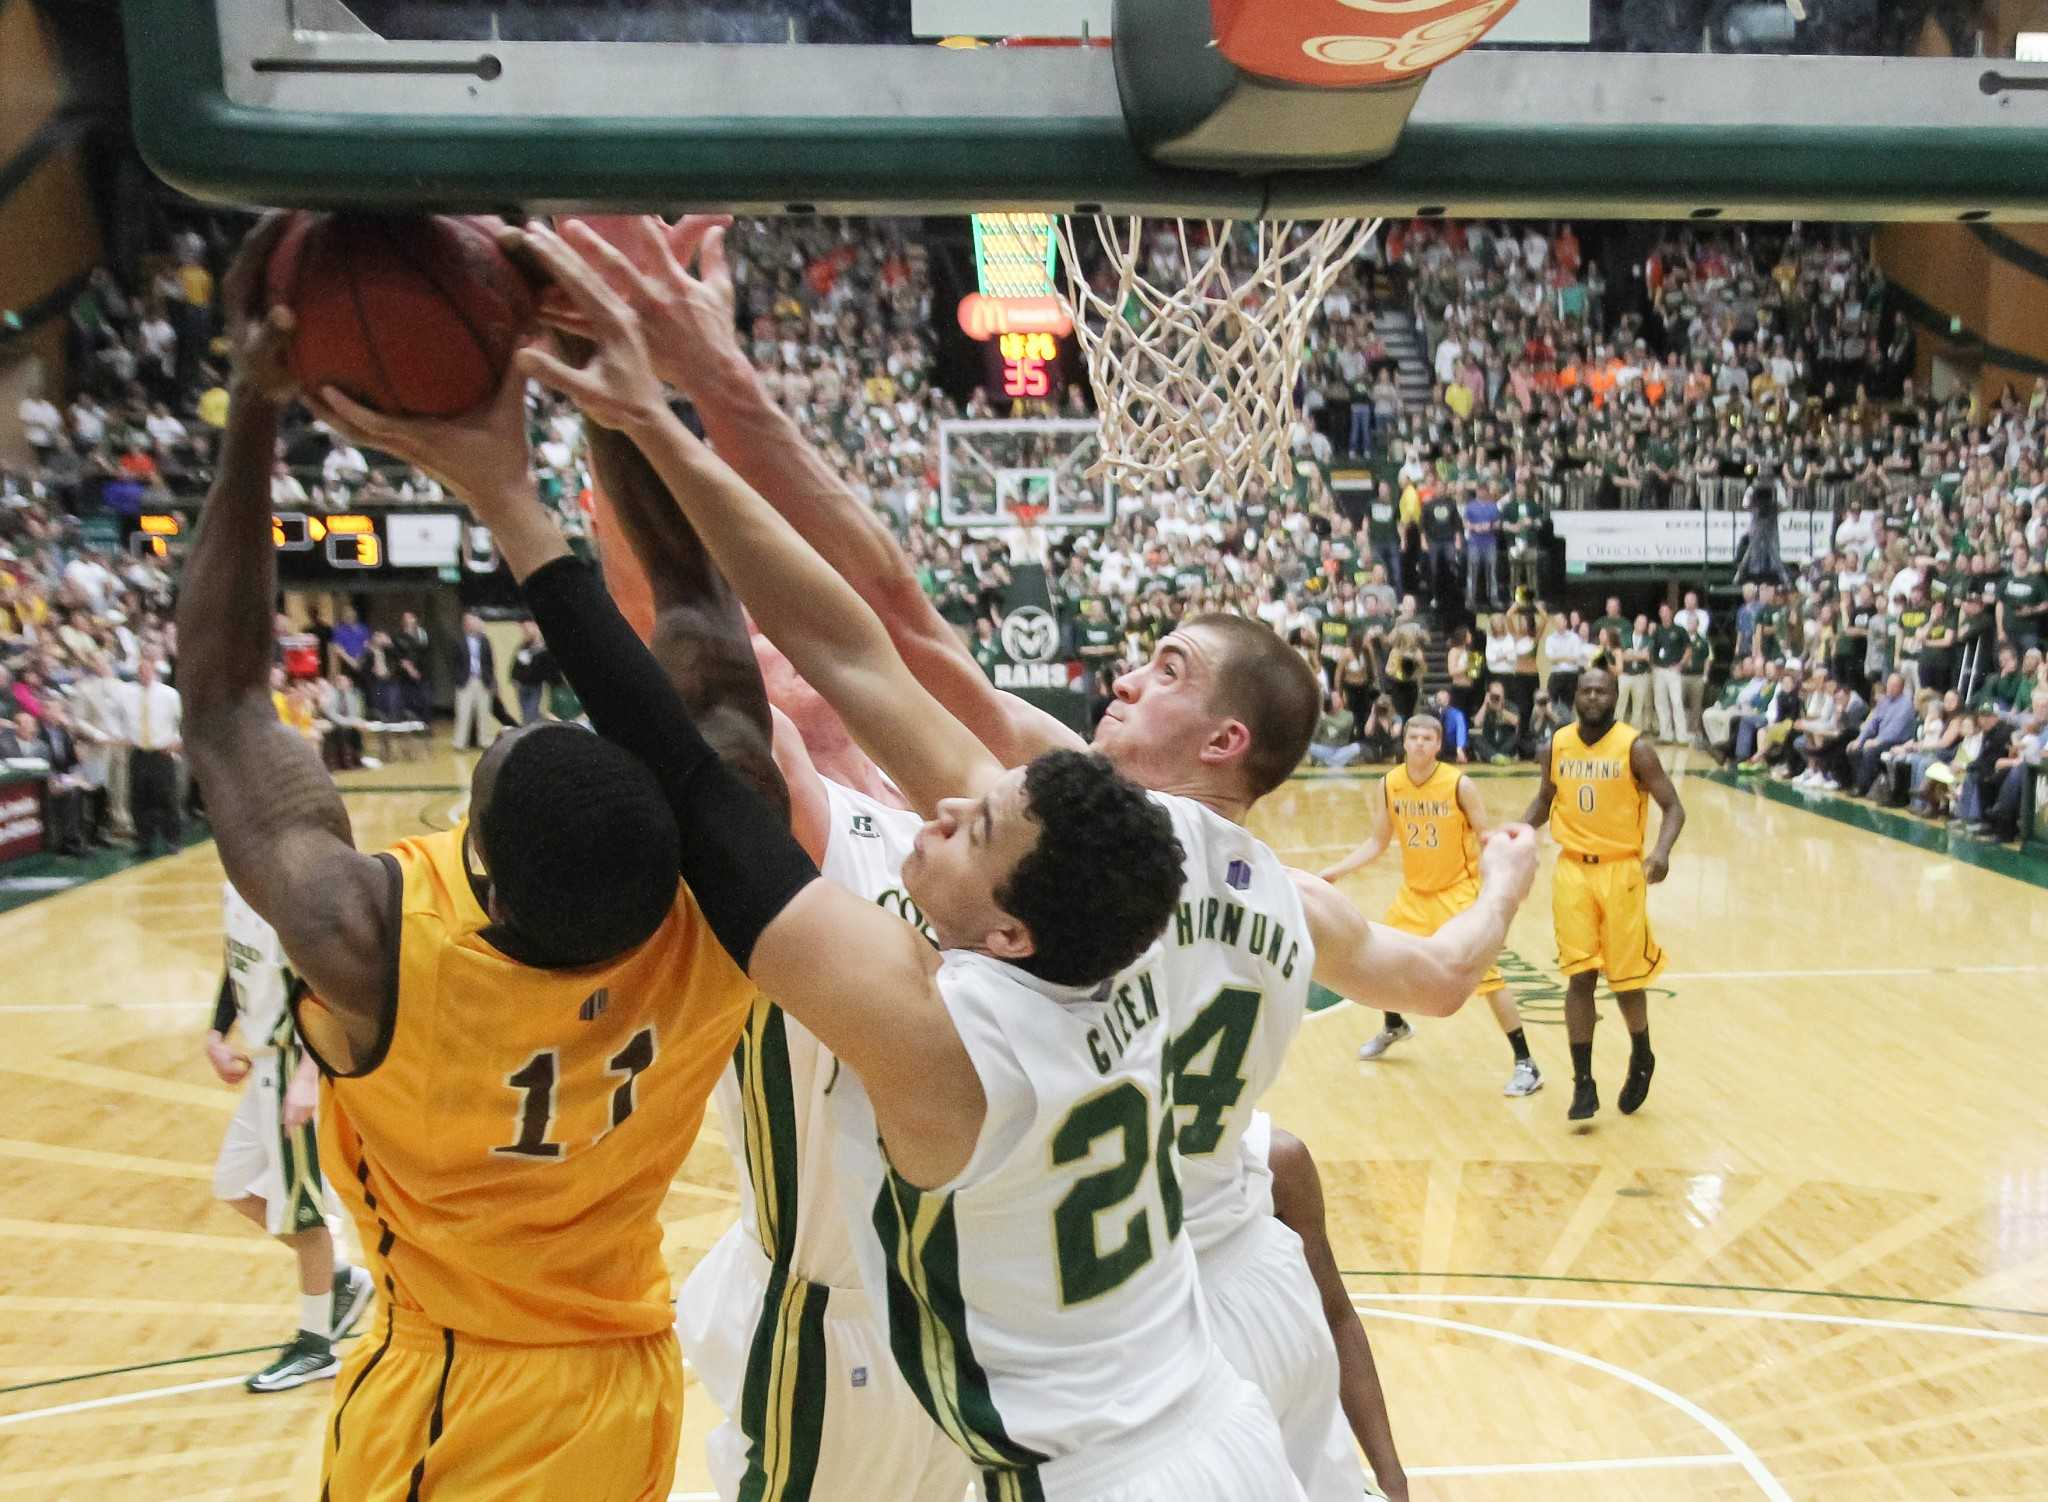 Colorado State men's basketball plays Wyoming at Moby Arena Saturday night in the annual border war.